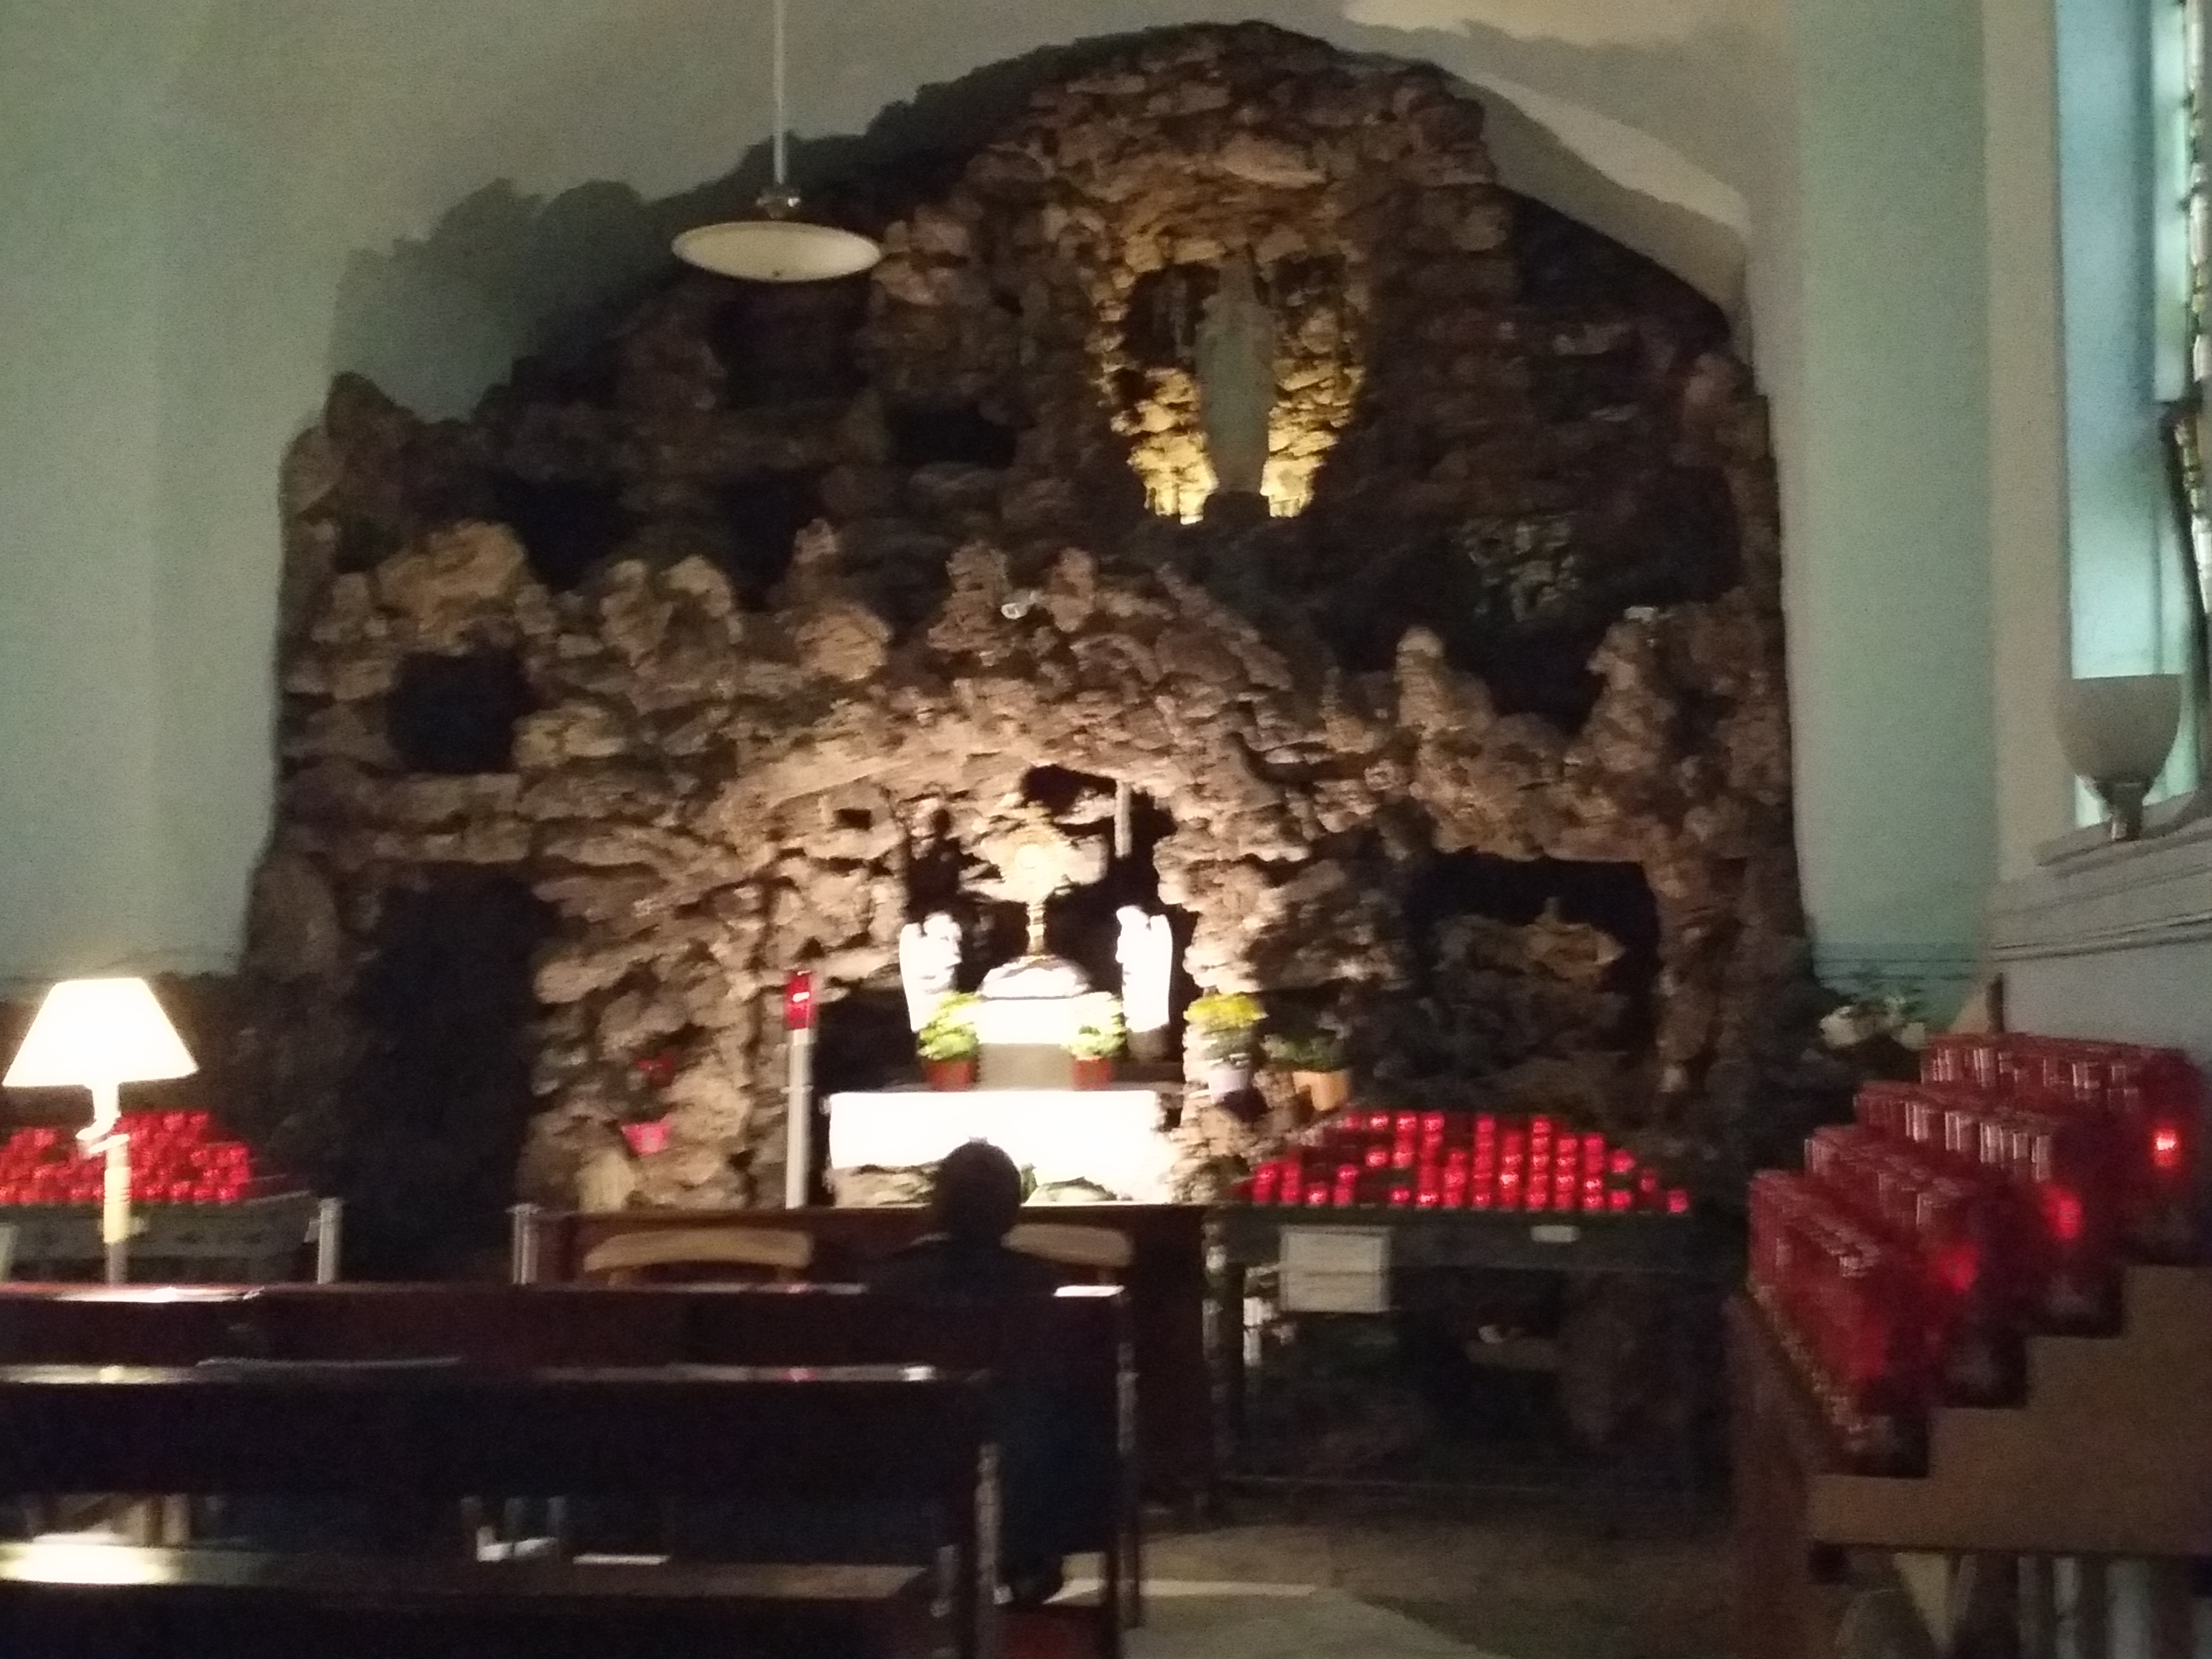 View Full Size Our Lady of Lourdes